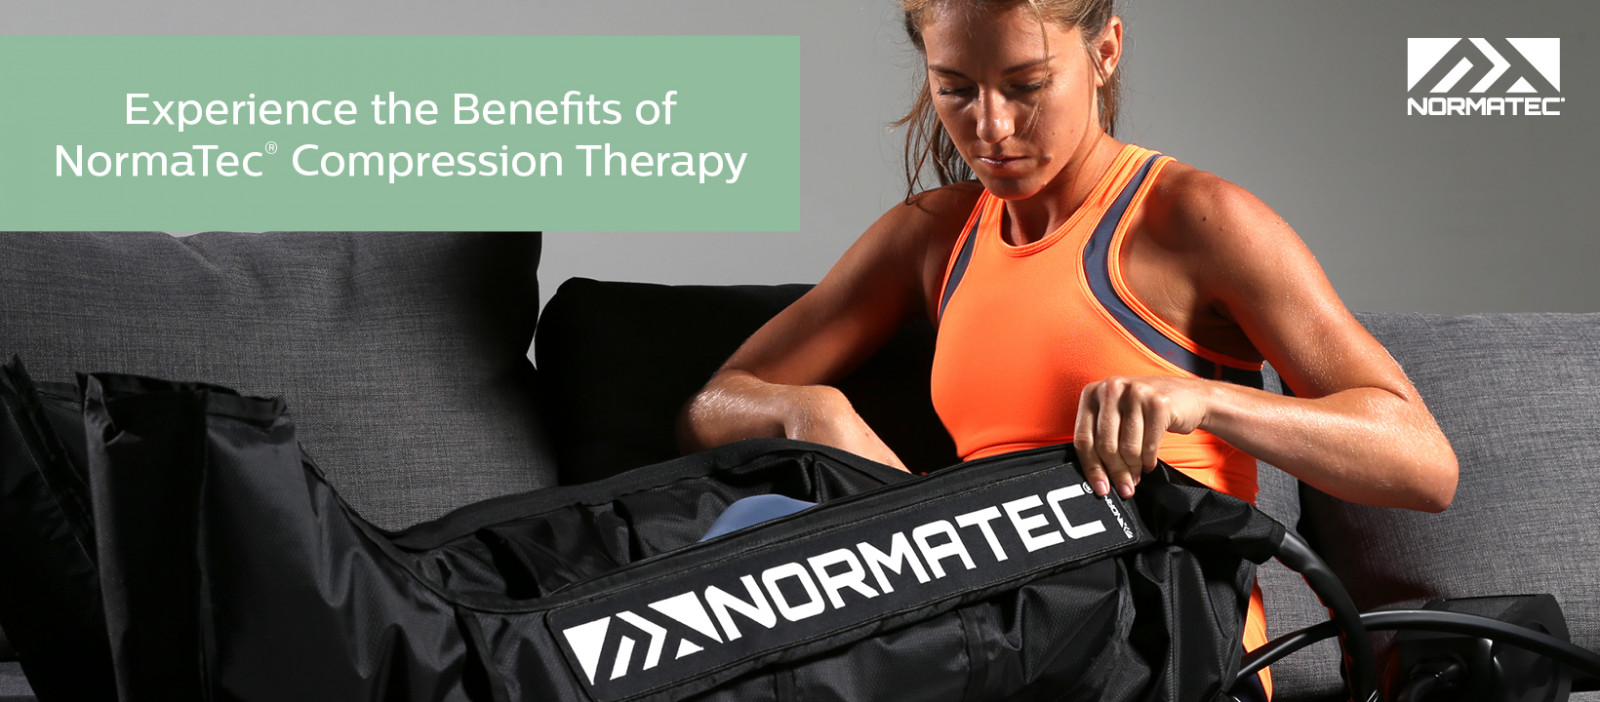 Experience the Benefits of NormaTec